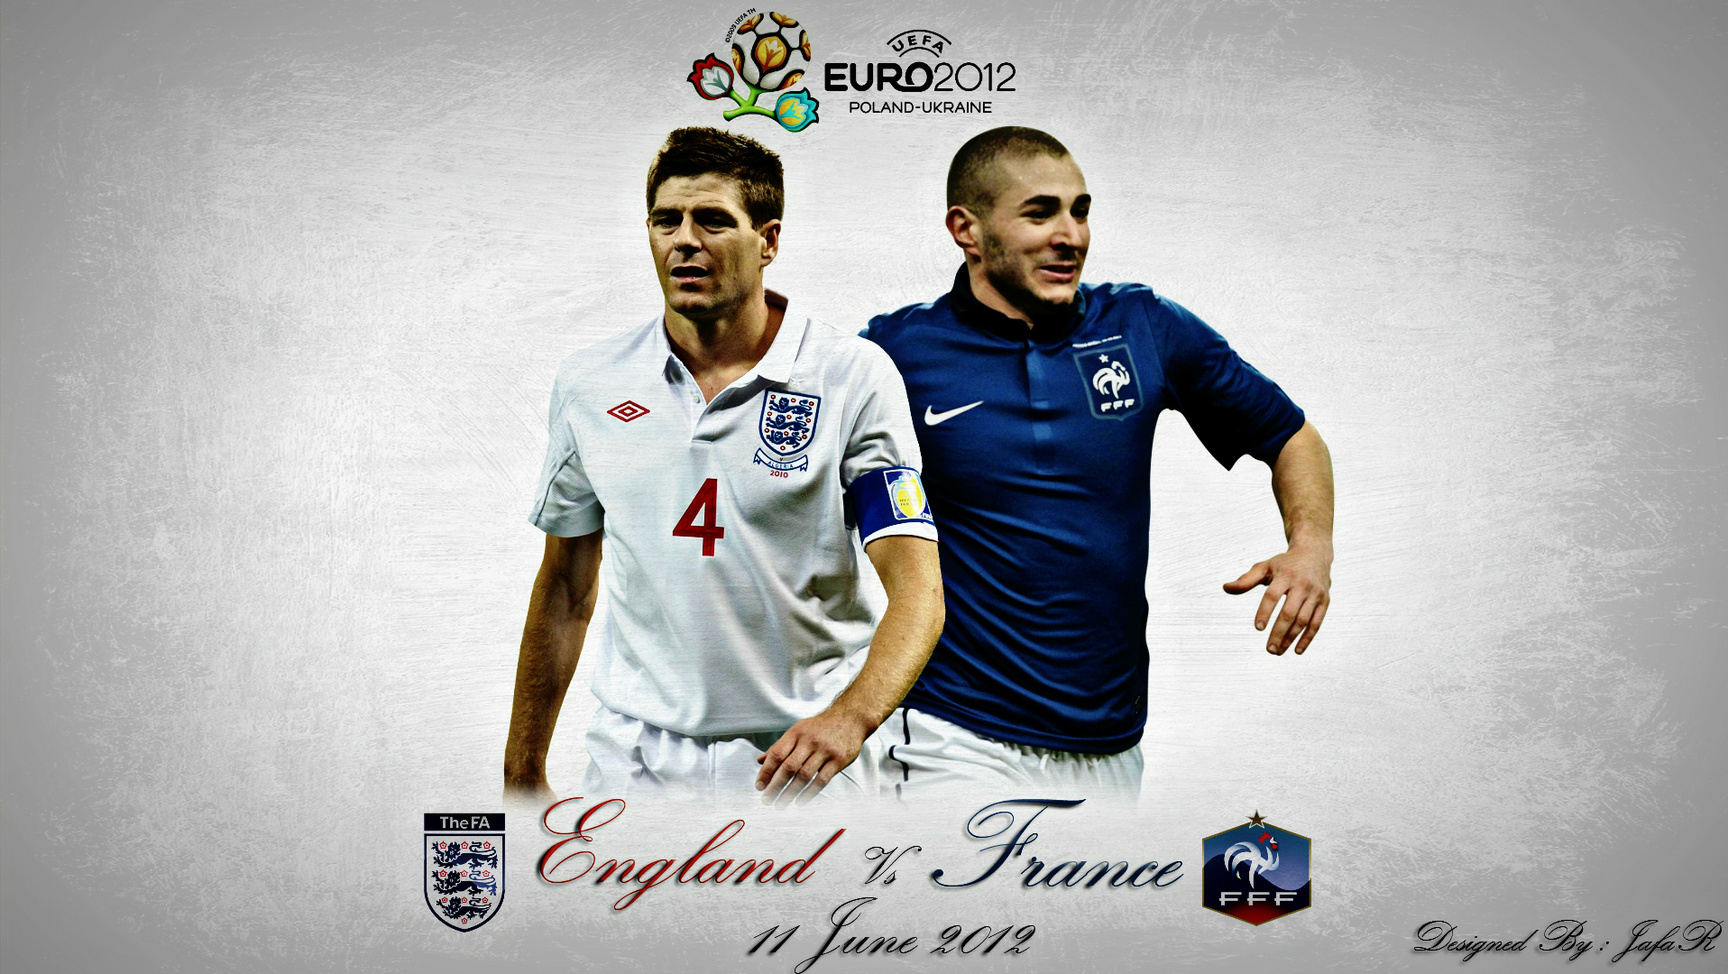 Watch England Vs France Online For Free Footyblog Net